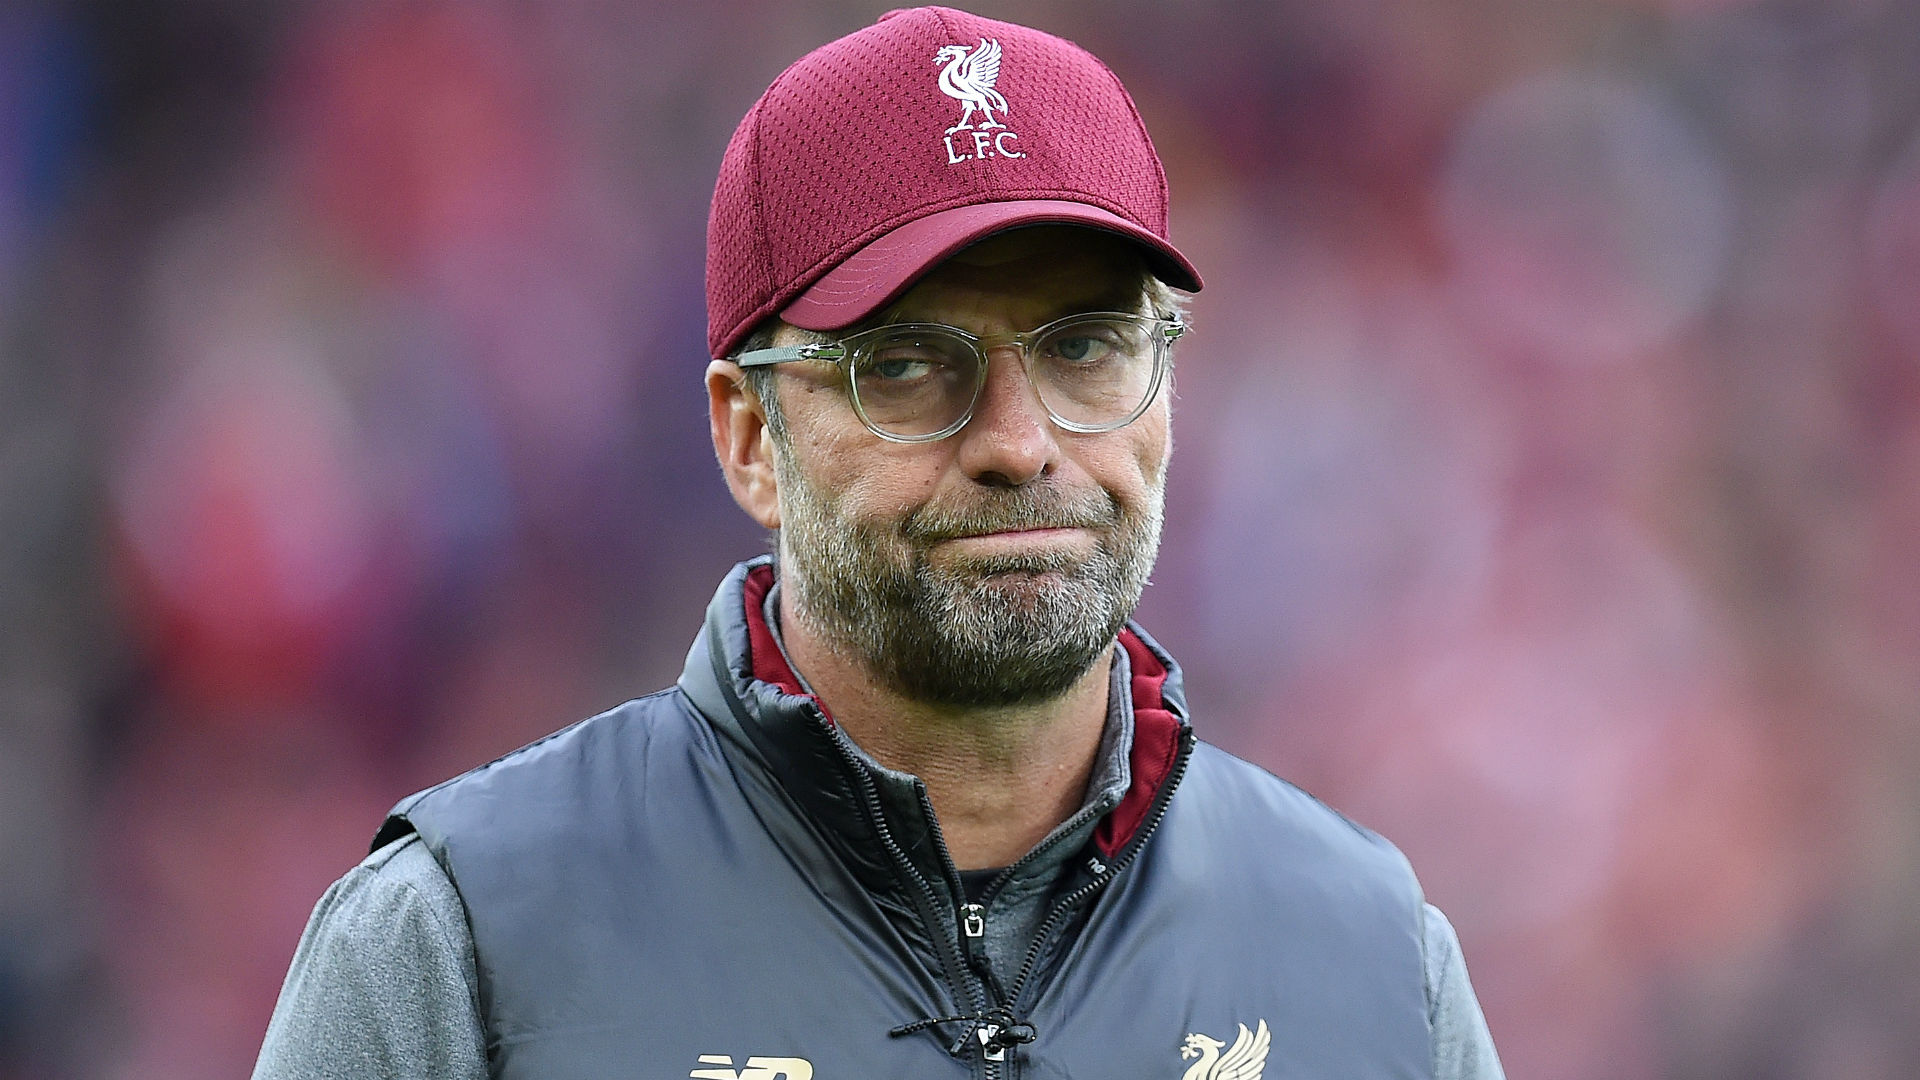 Liverpool's Jurgen Klopp: Nations League a 'senseless' competition